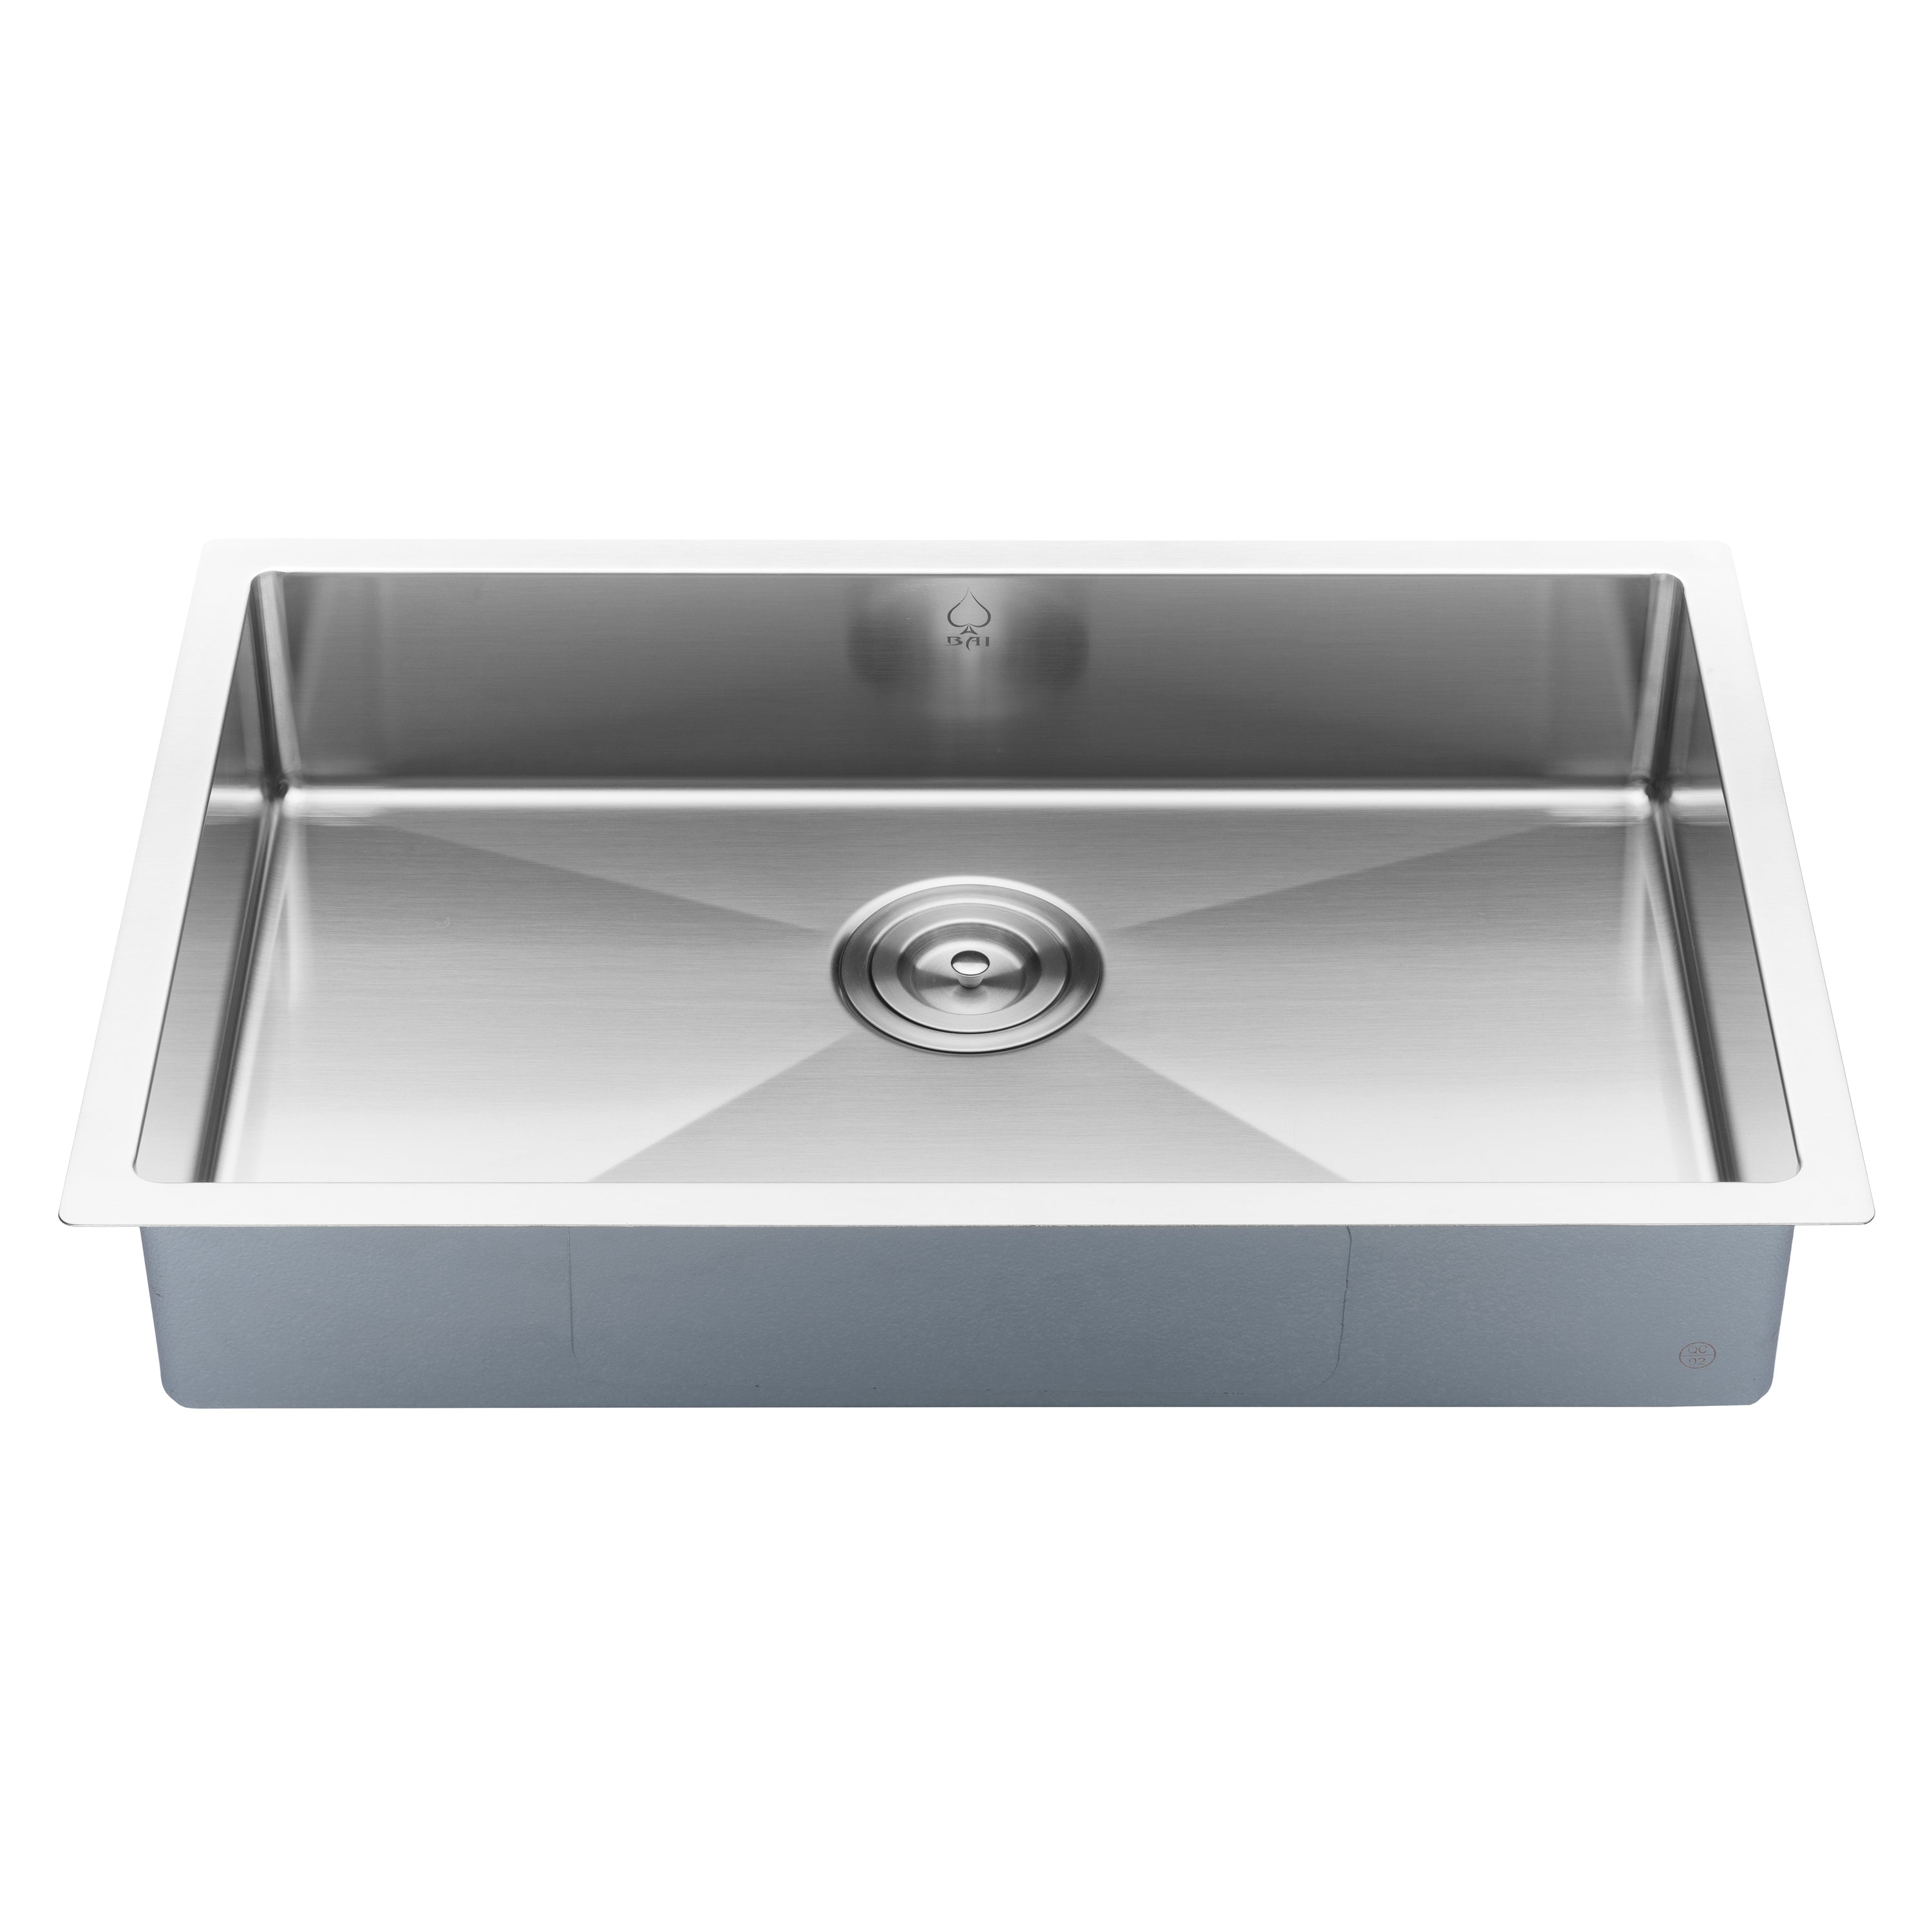 Sink Undermount Kitchen Sinks Miami Table With Bench Drop In ...